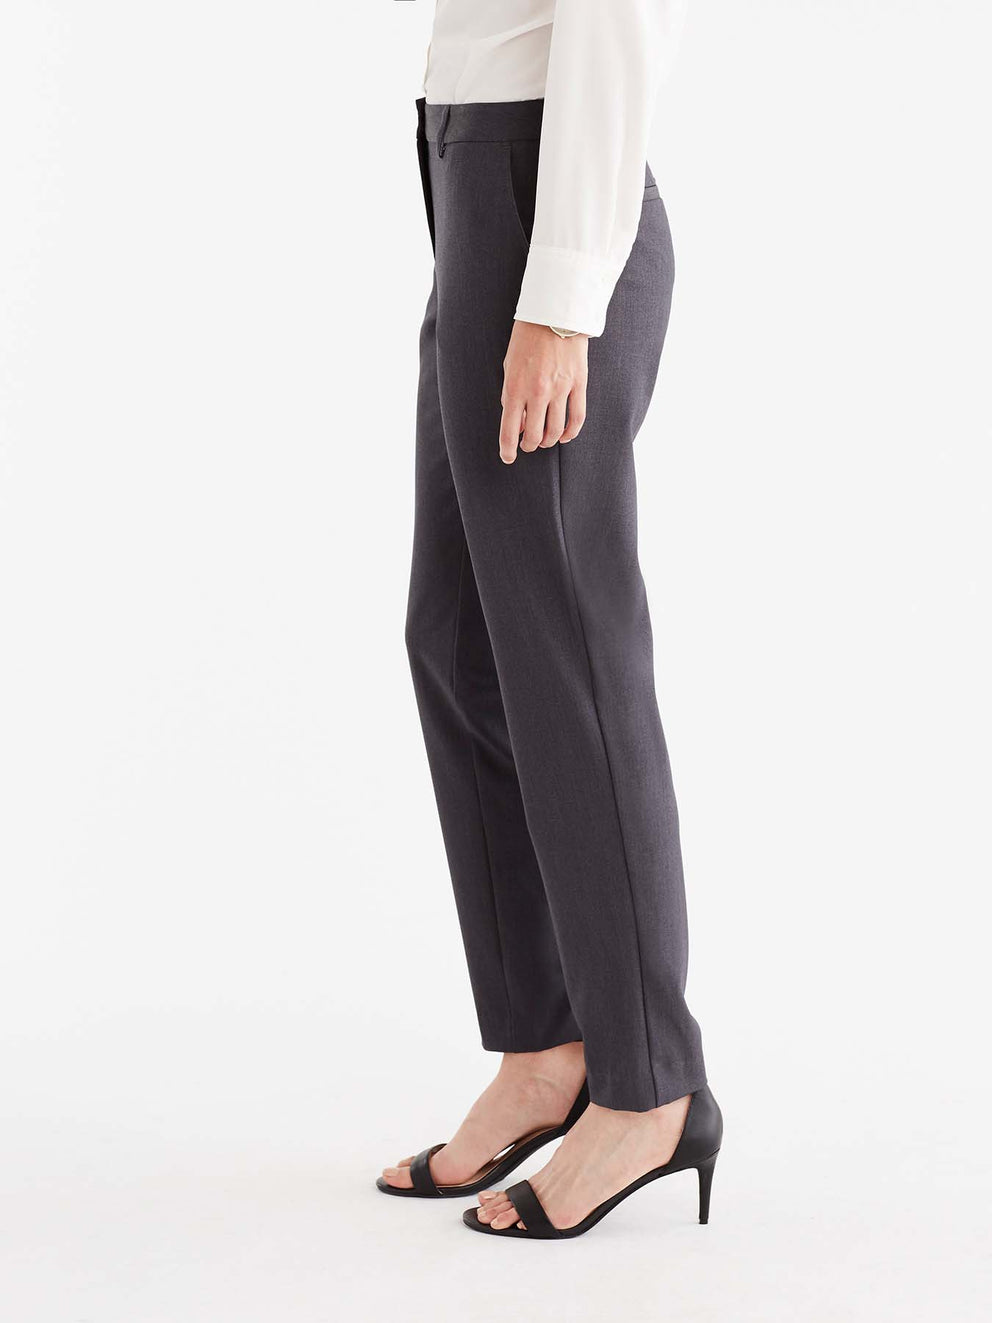 The Jones New York Grace Full-Length Pant in color Charcoal - Image Position 4